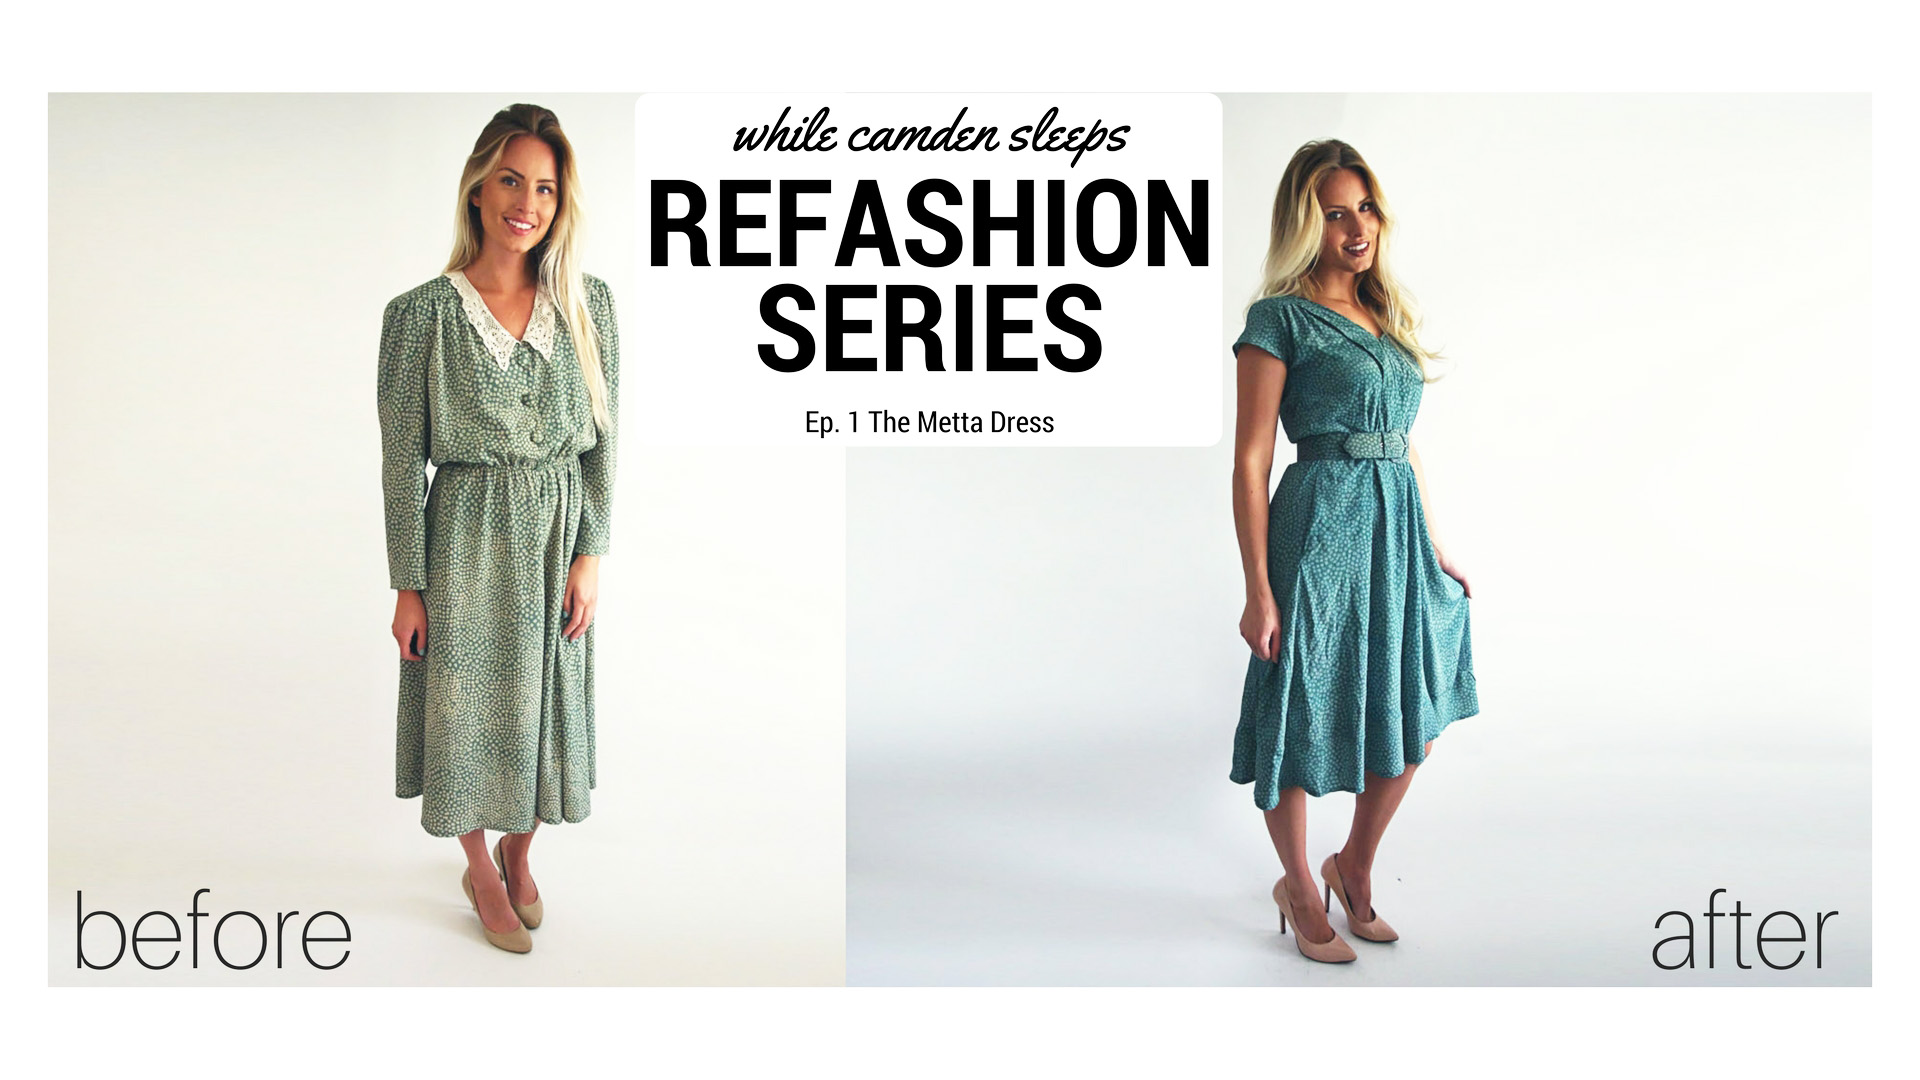 Refashion Series Ep.1